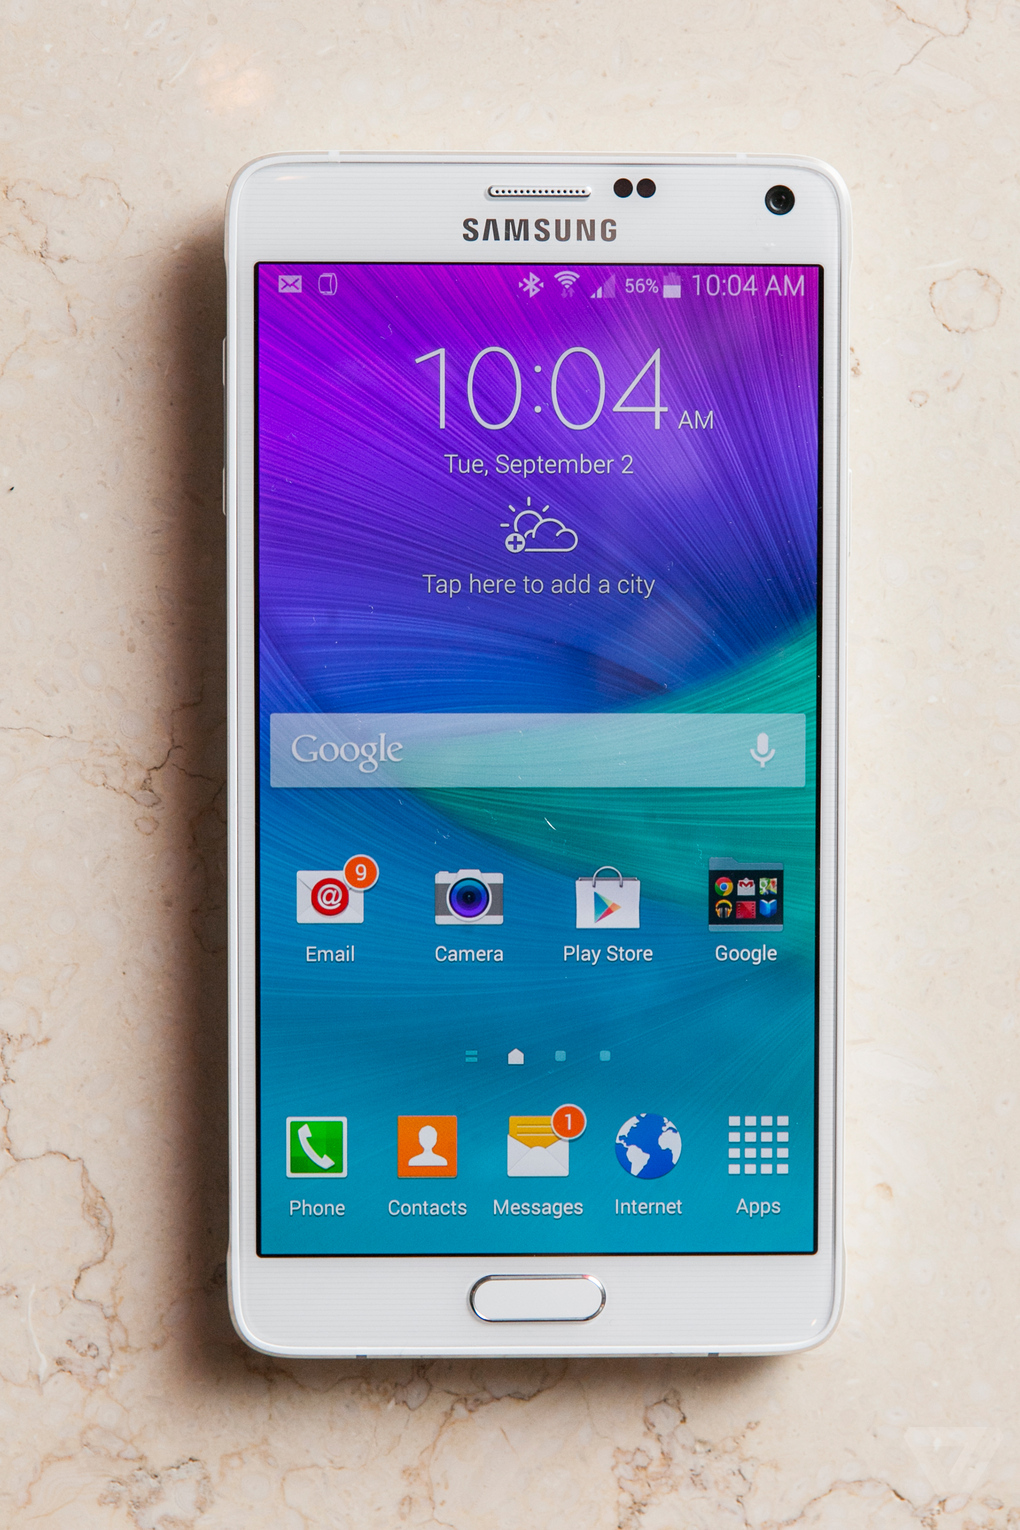 Samsung Note 4 Details and Battery